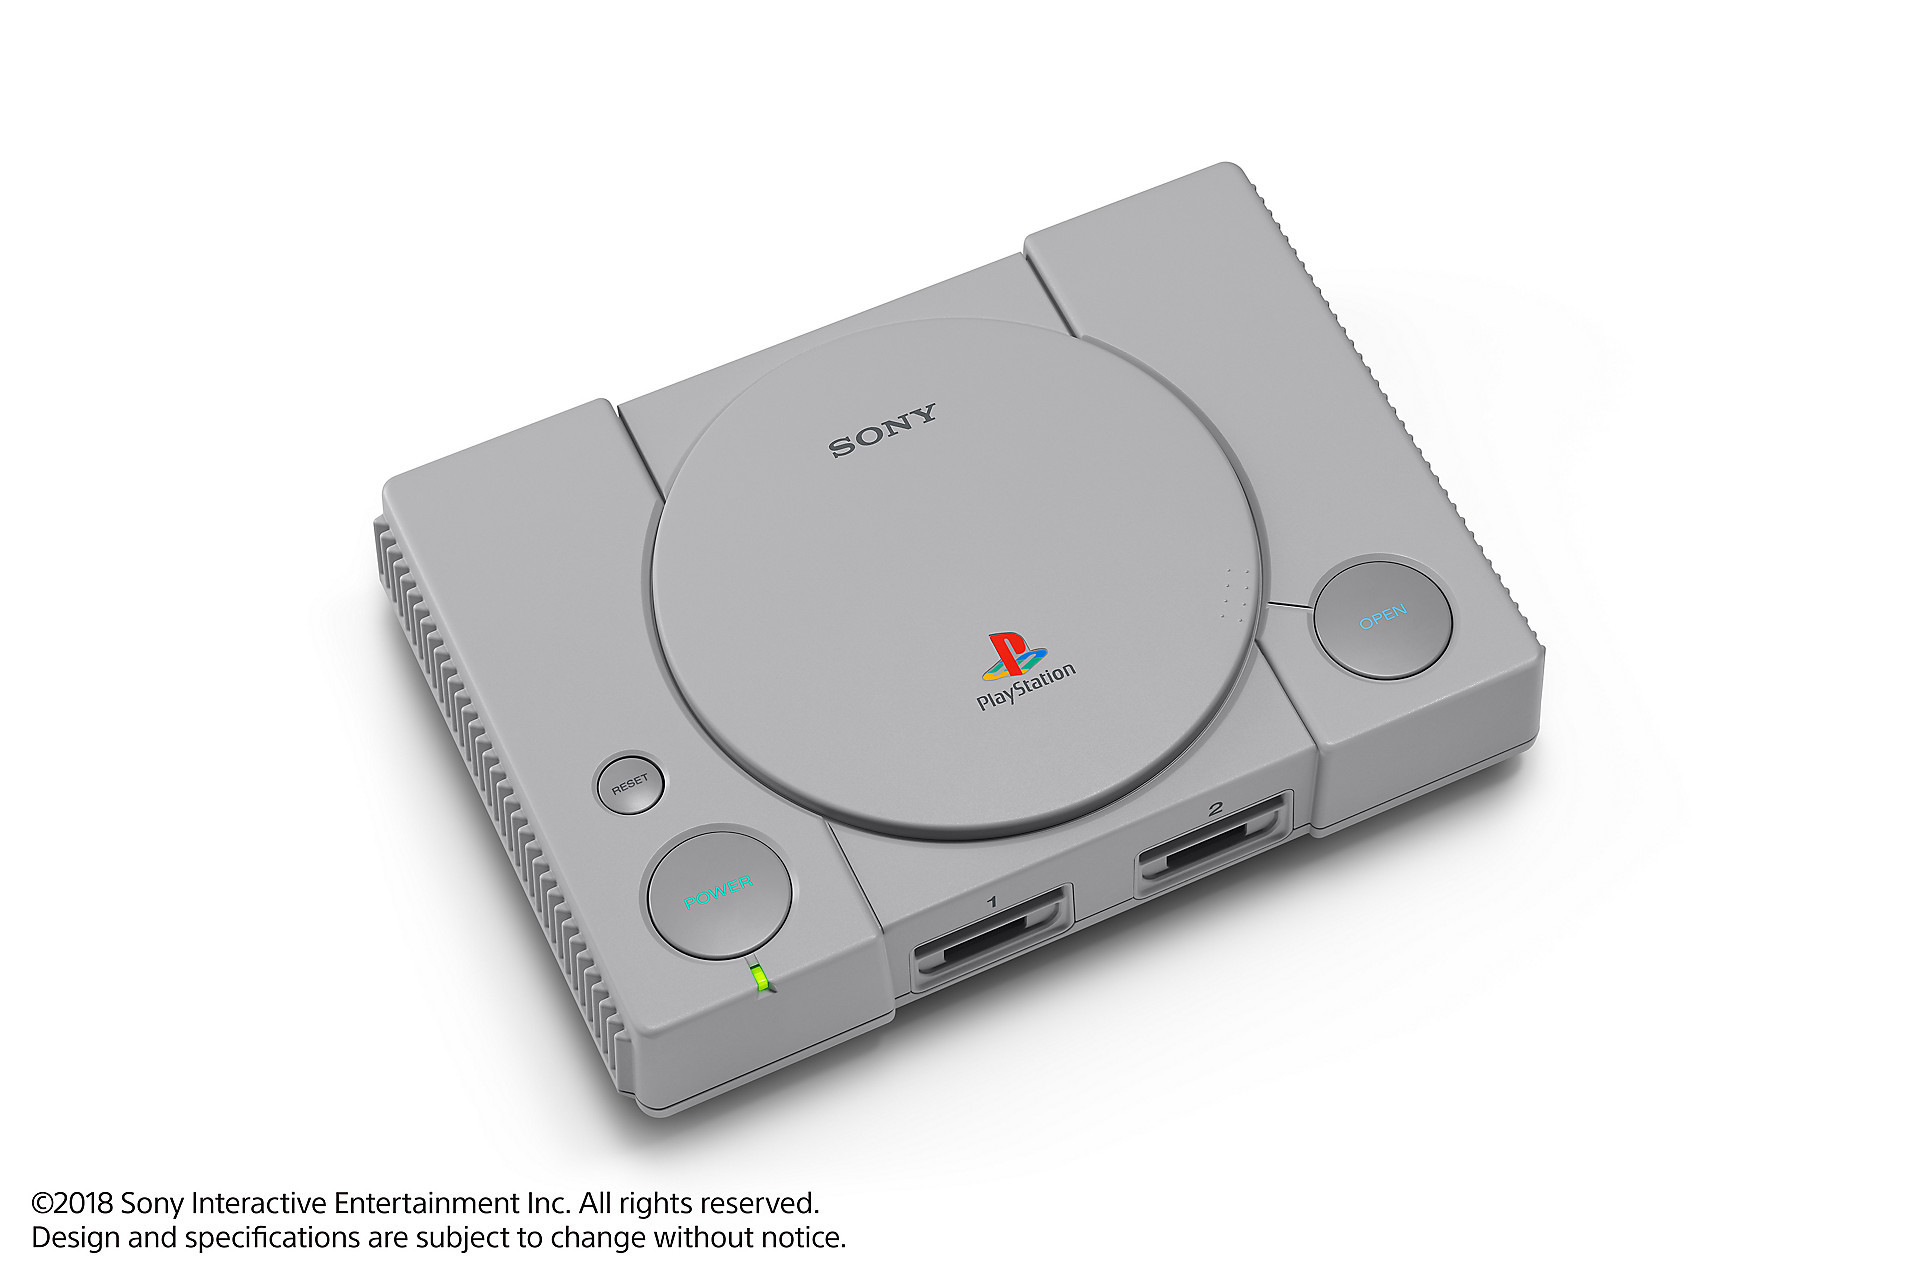 playstationclassic5